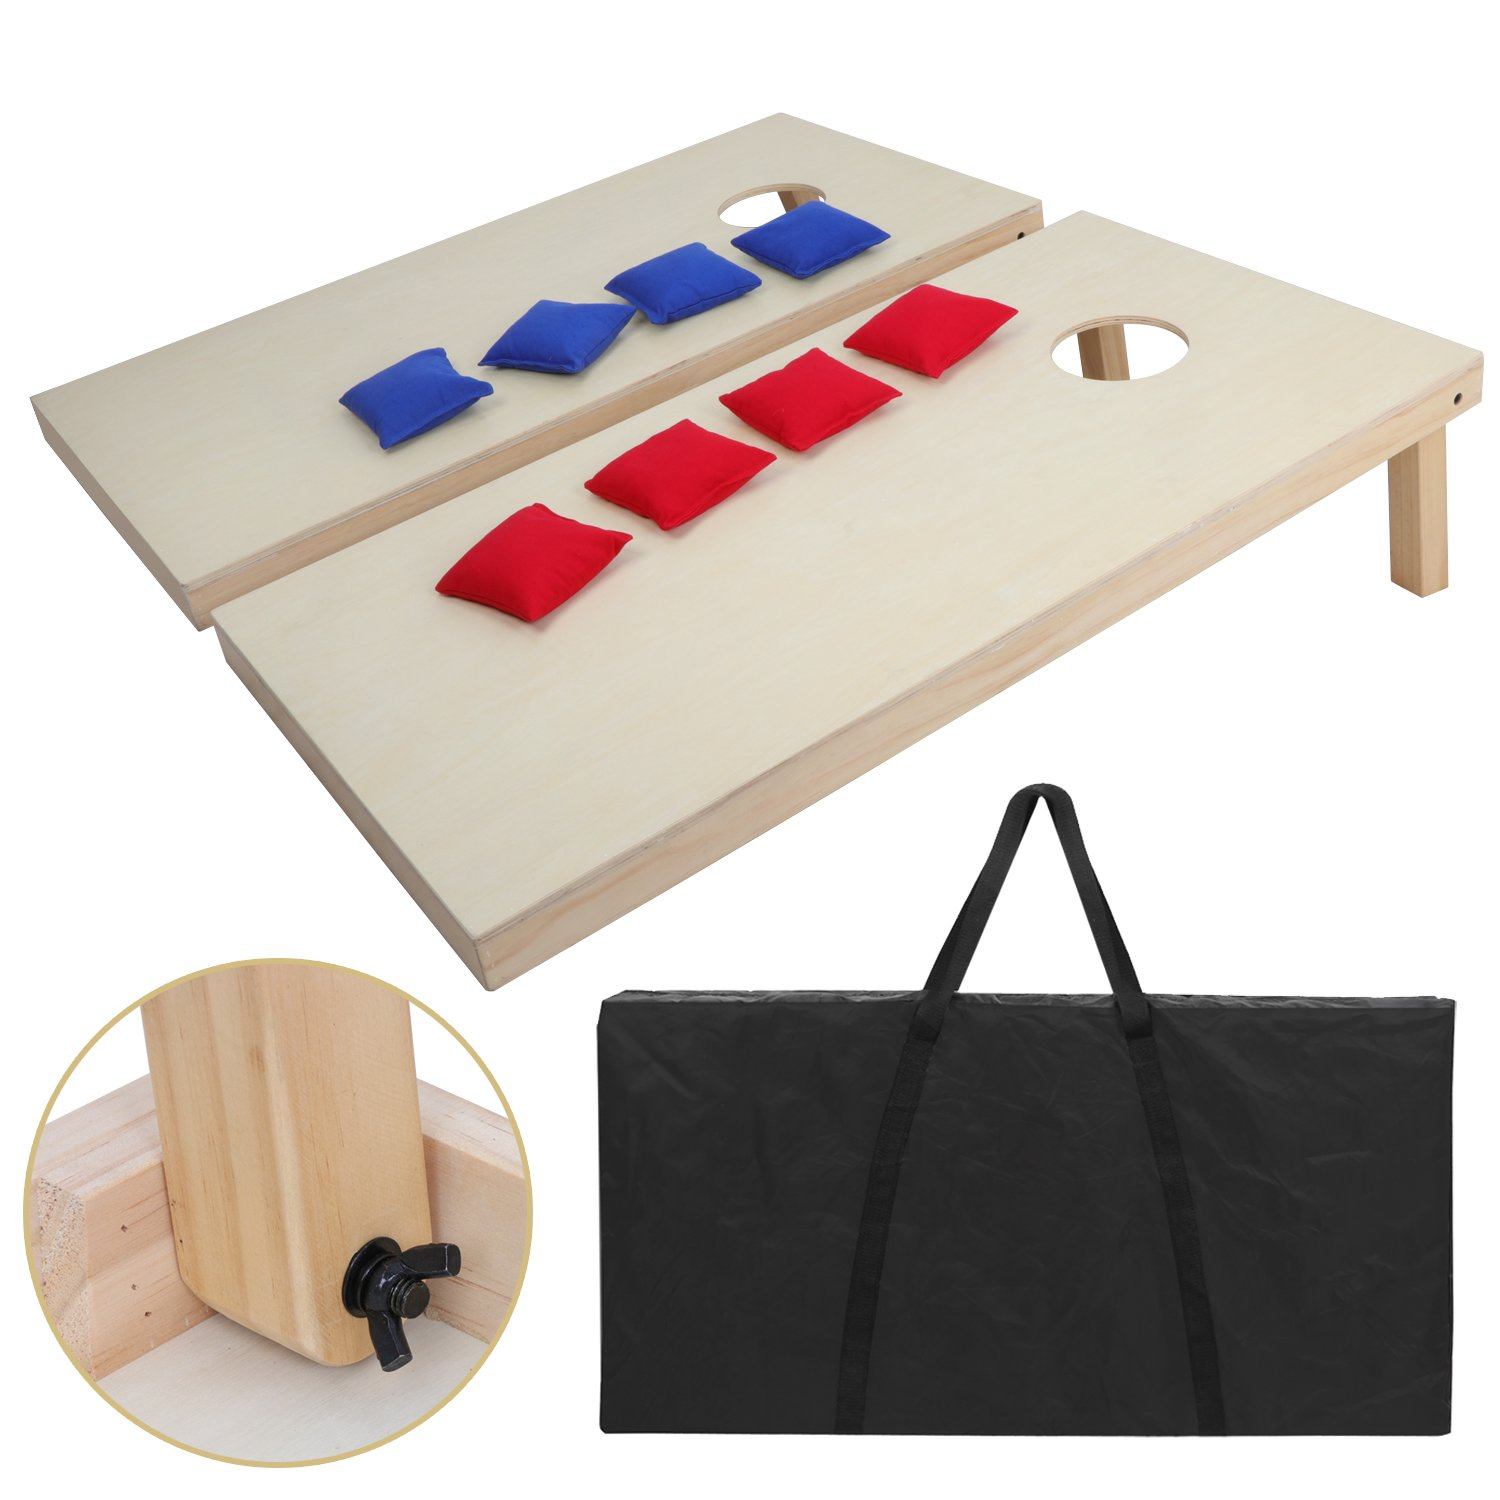 Corn Hole Game Bean Bag Toss Outdoor Play Set Tailgaters Camping BBQ Aluminum